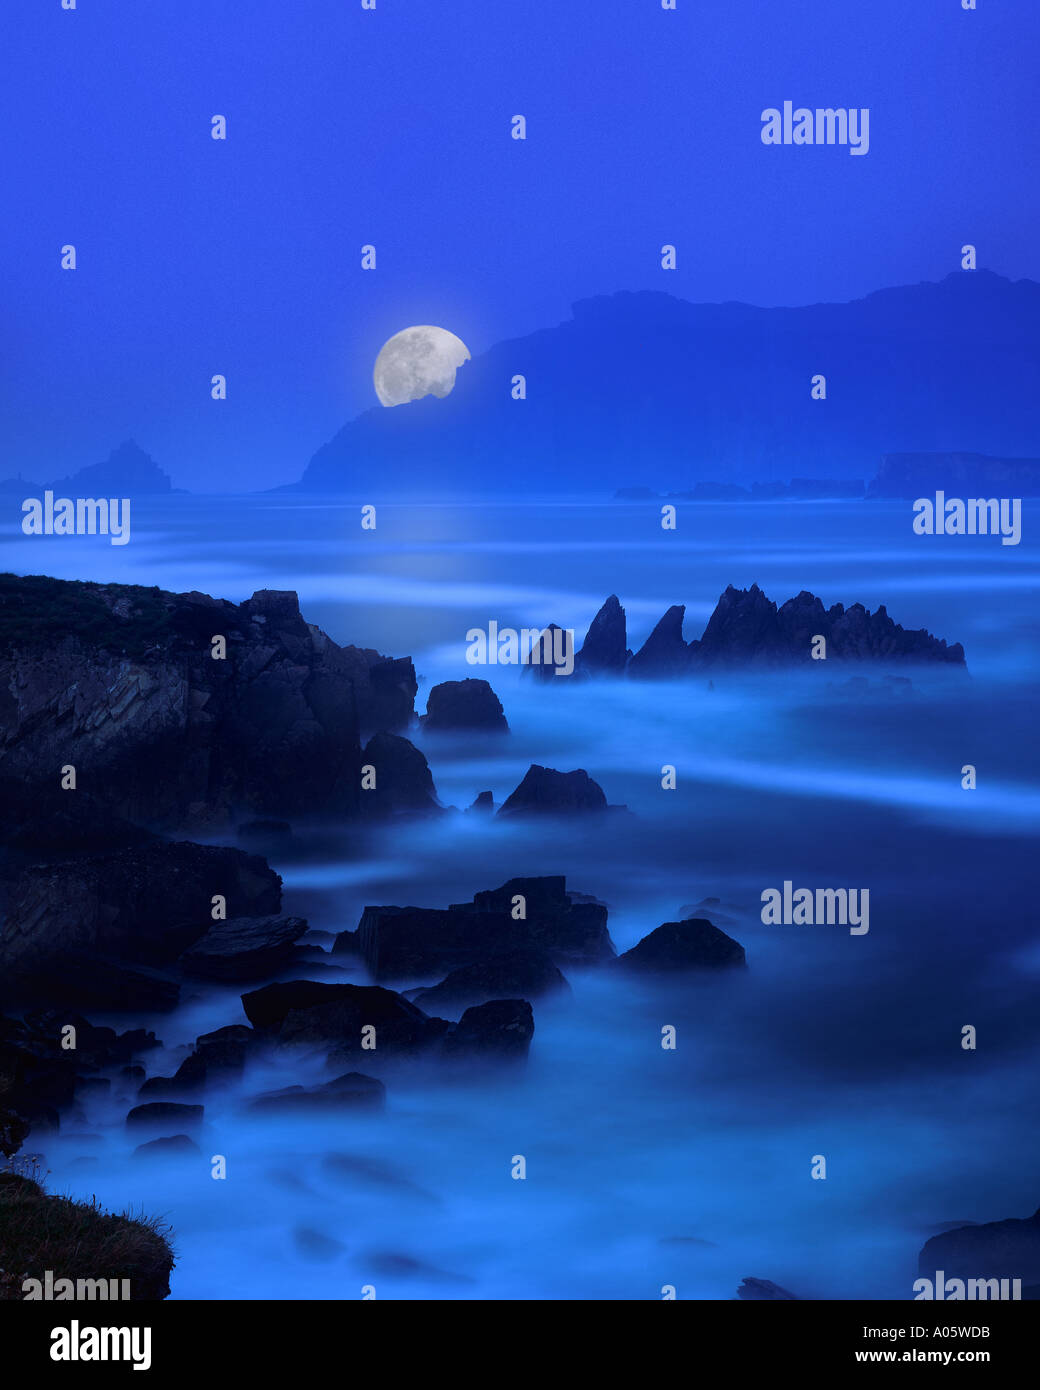 IE - CO. KERRY: Moon over Ballyferriter Bay - Stock Image